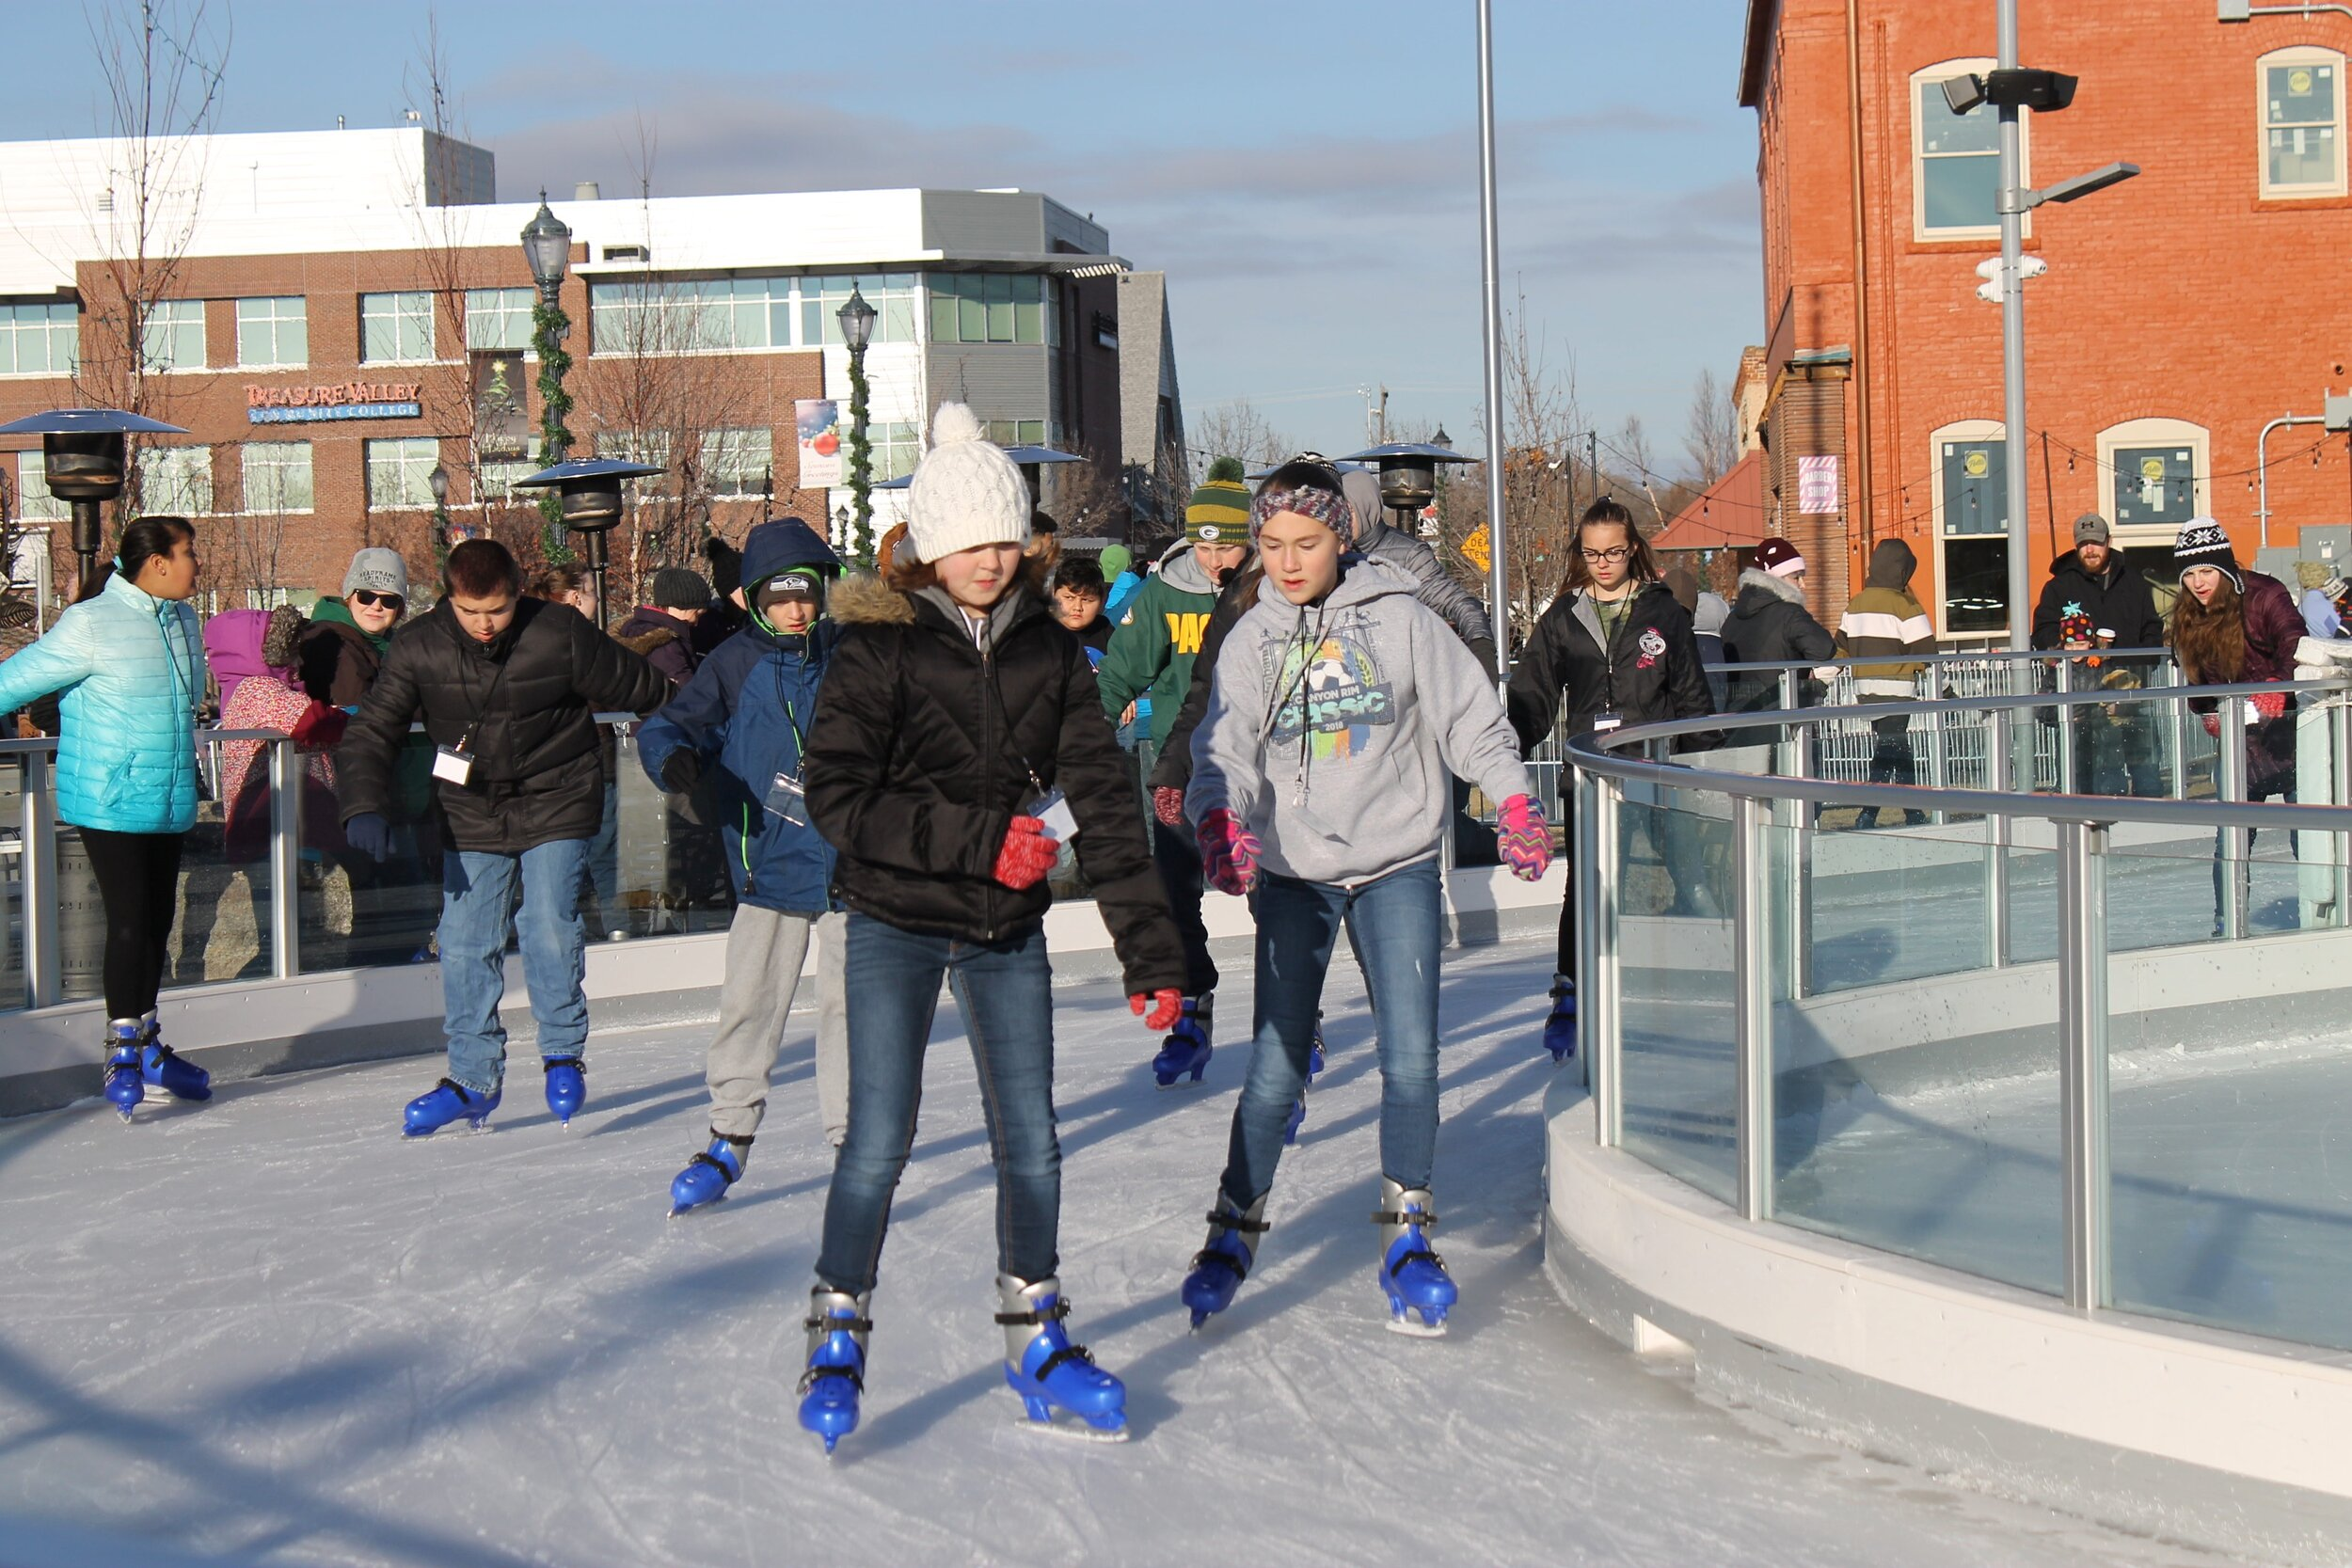 Free skate time allows students to practice the skills they learned